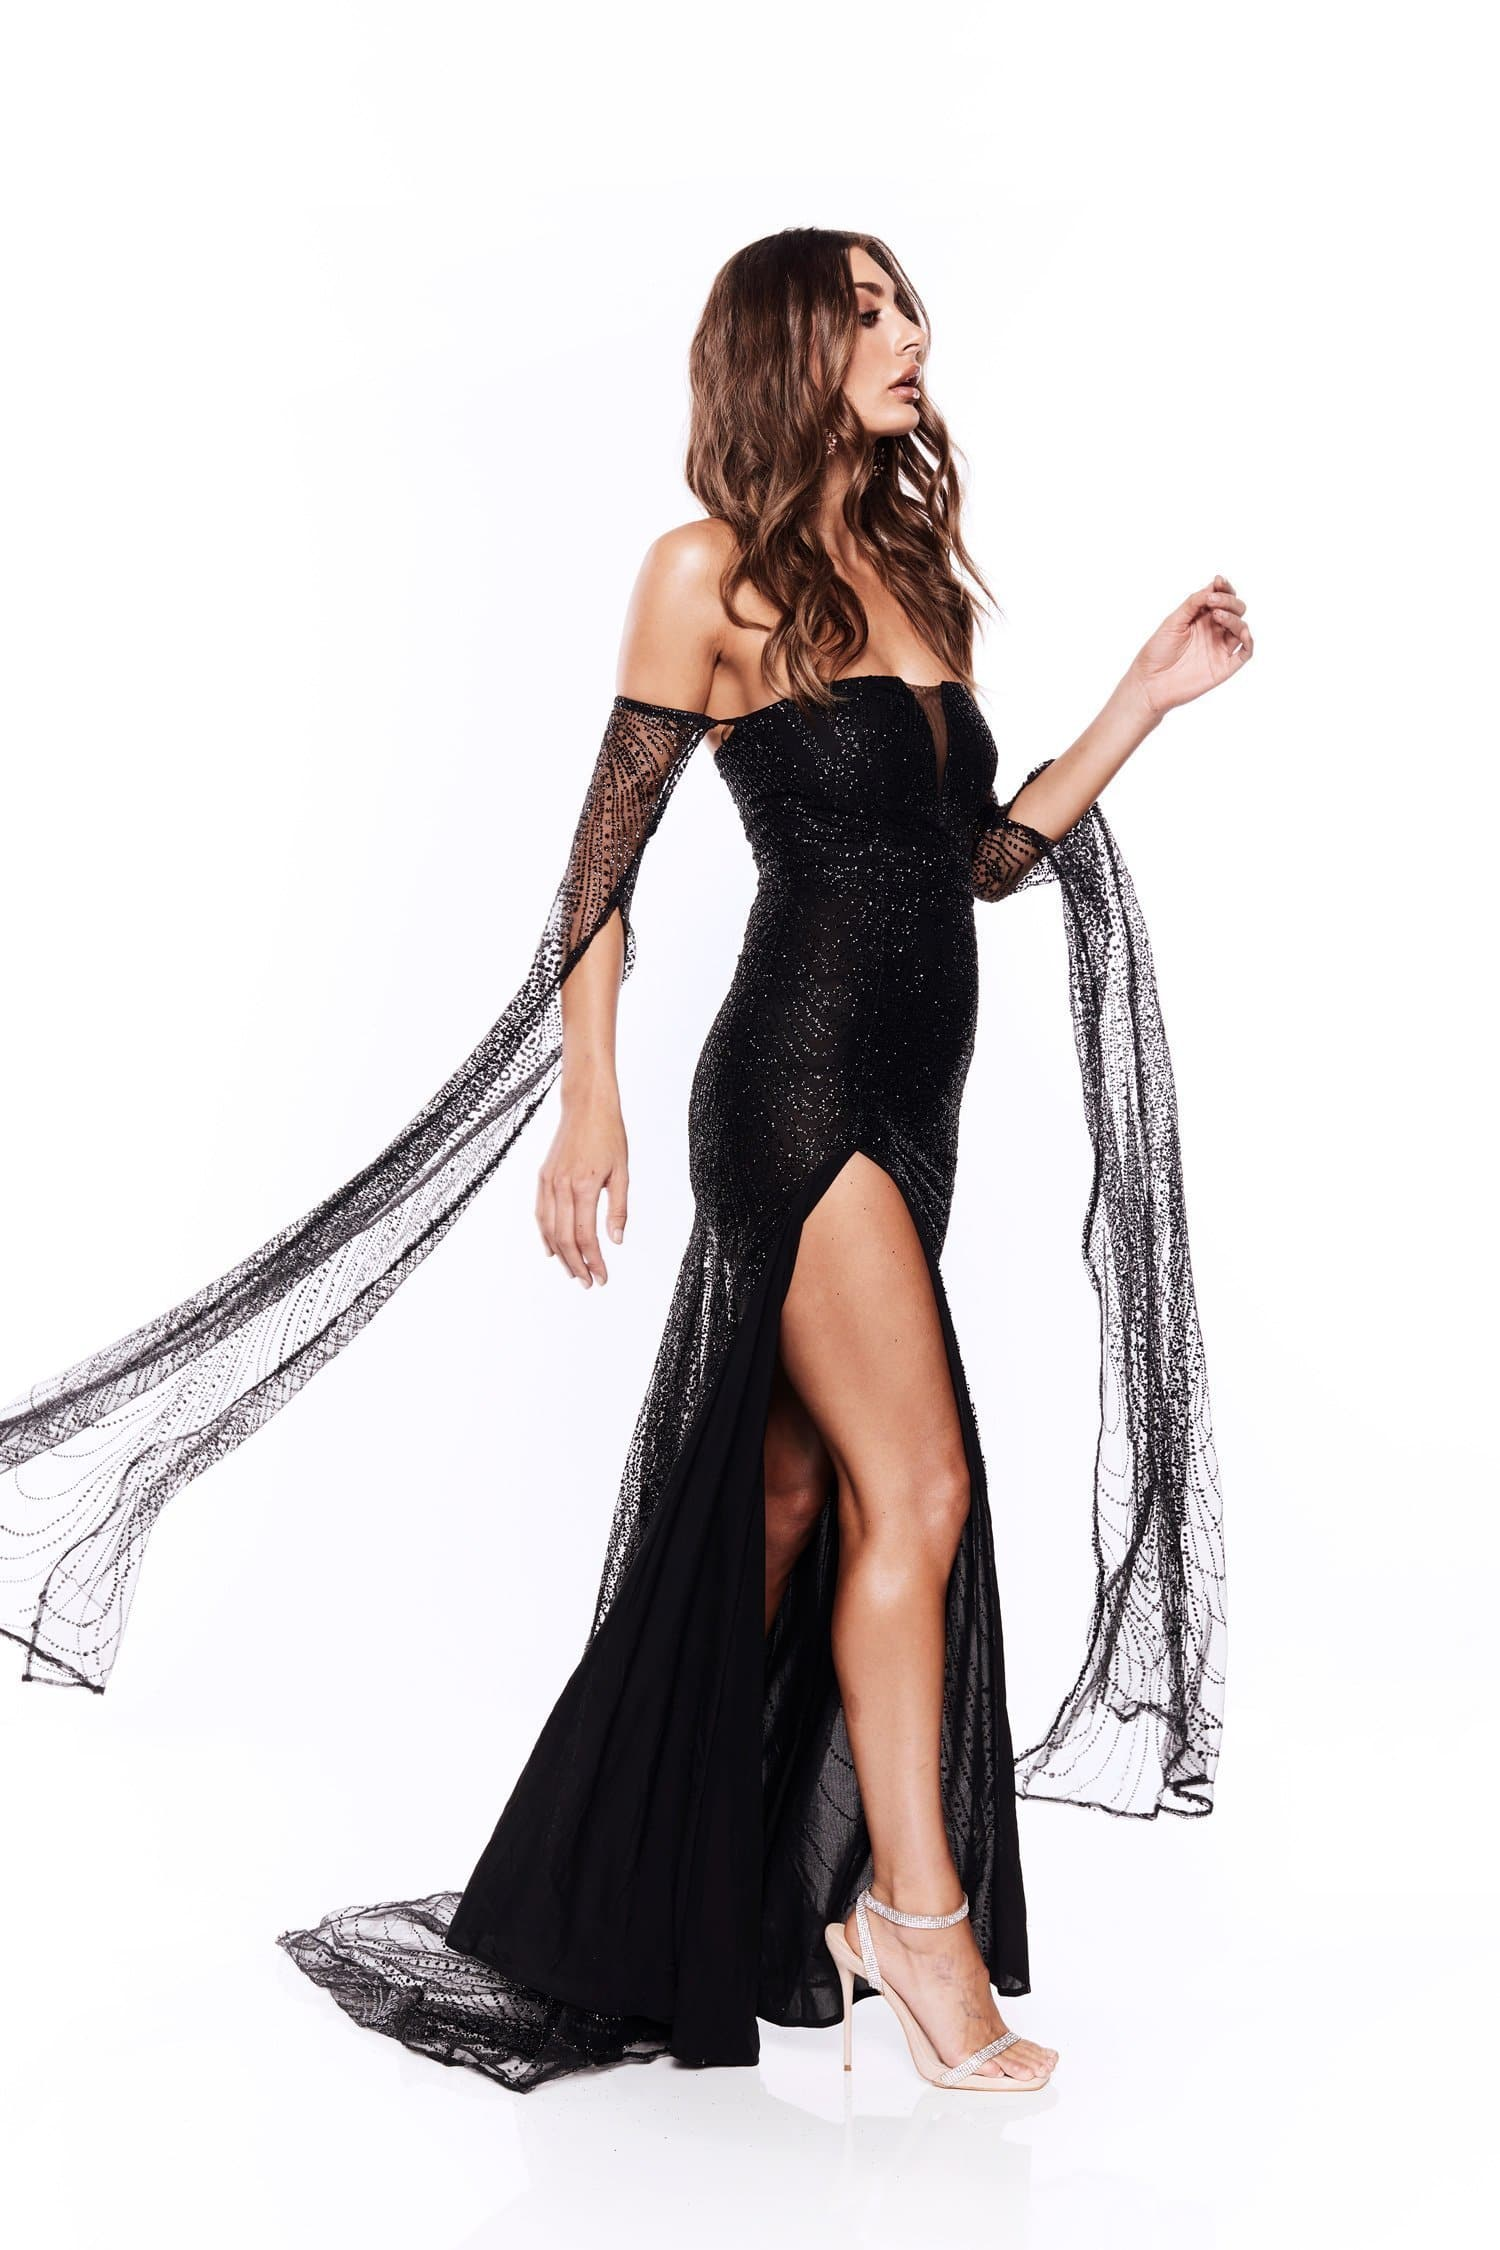 Jocelina - Black Glitter Gown with Long Sheer Sleeves and Side Slit